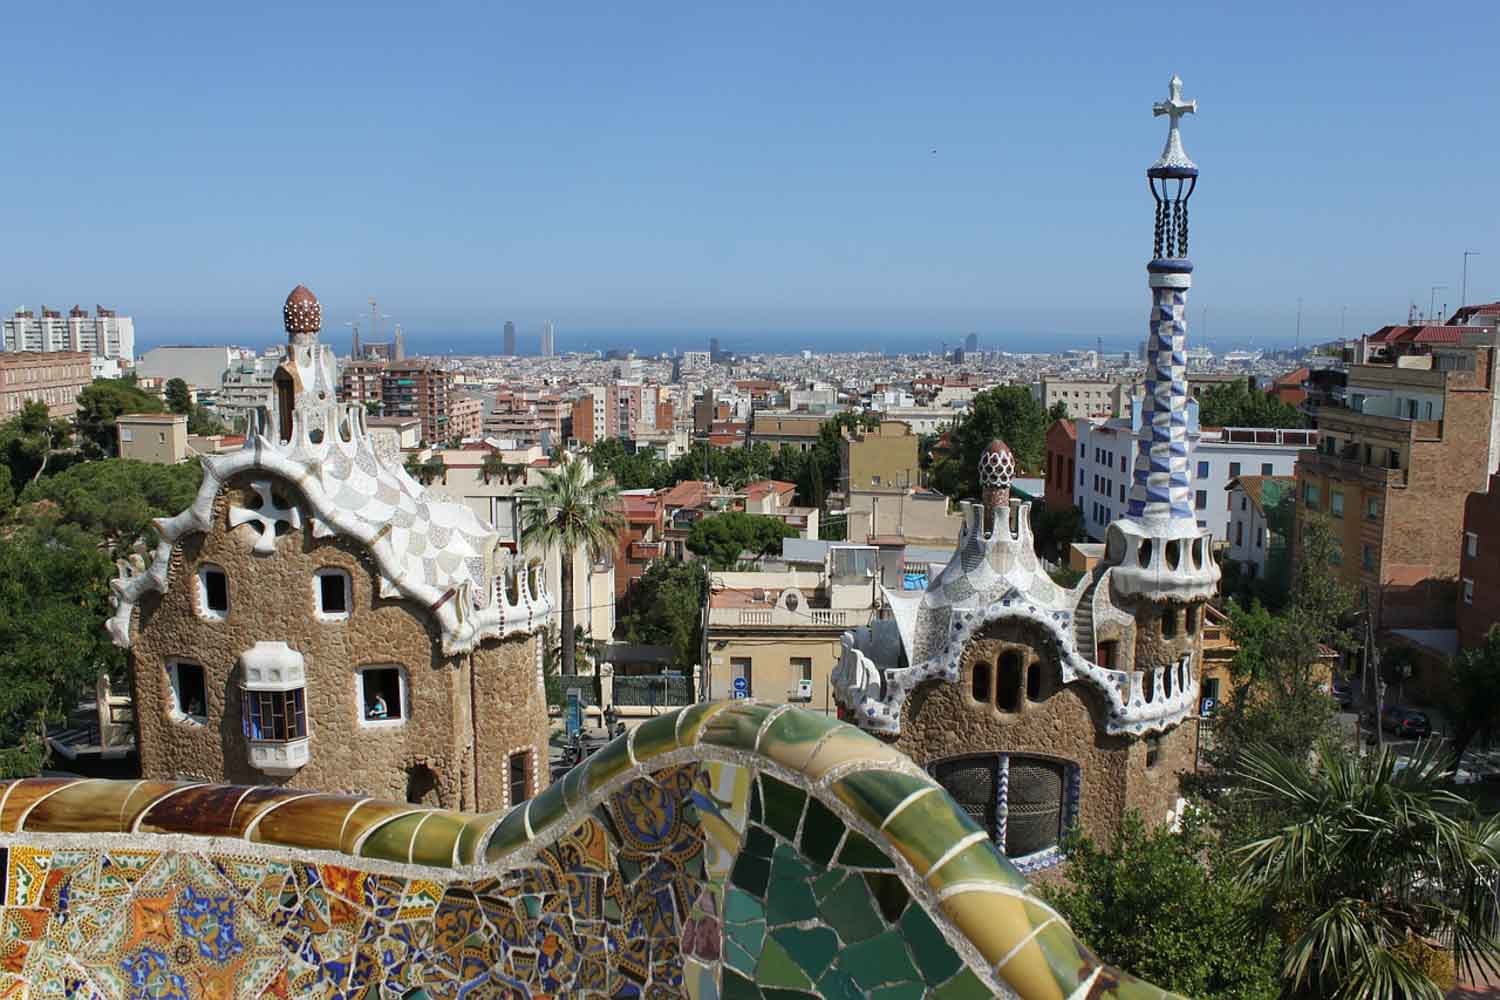 Barcelona as seen from Park Güell, designed by Gaudi